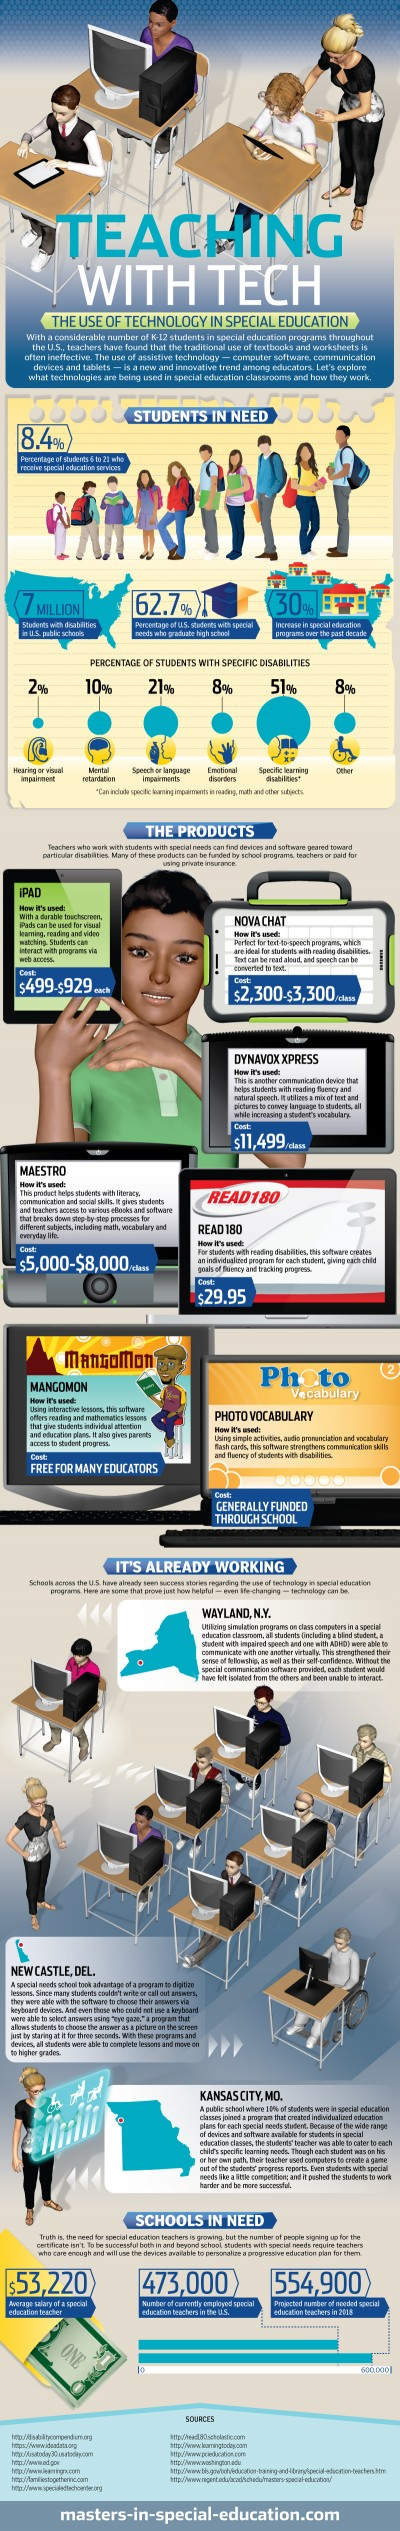 Teaching with Tech [Infographic]